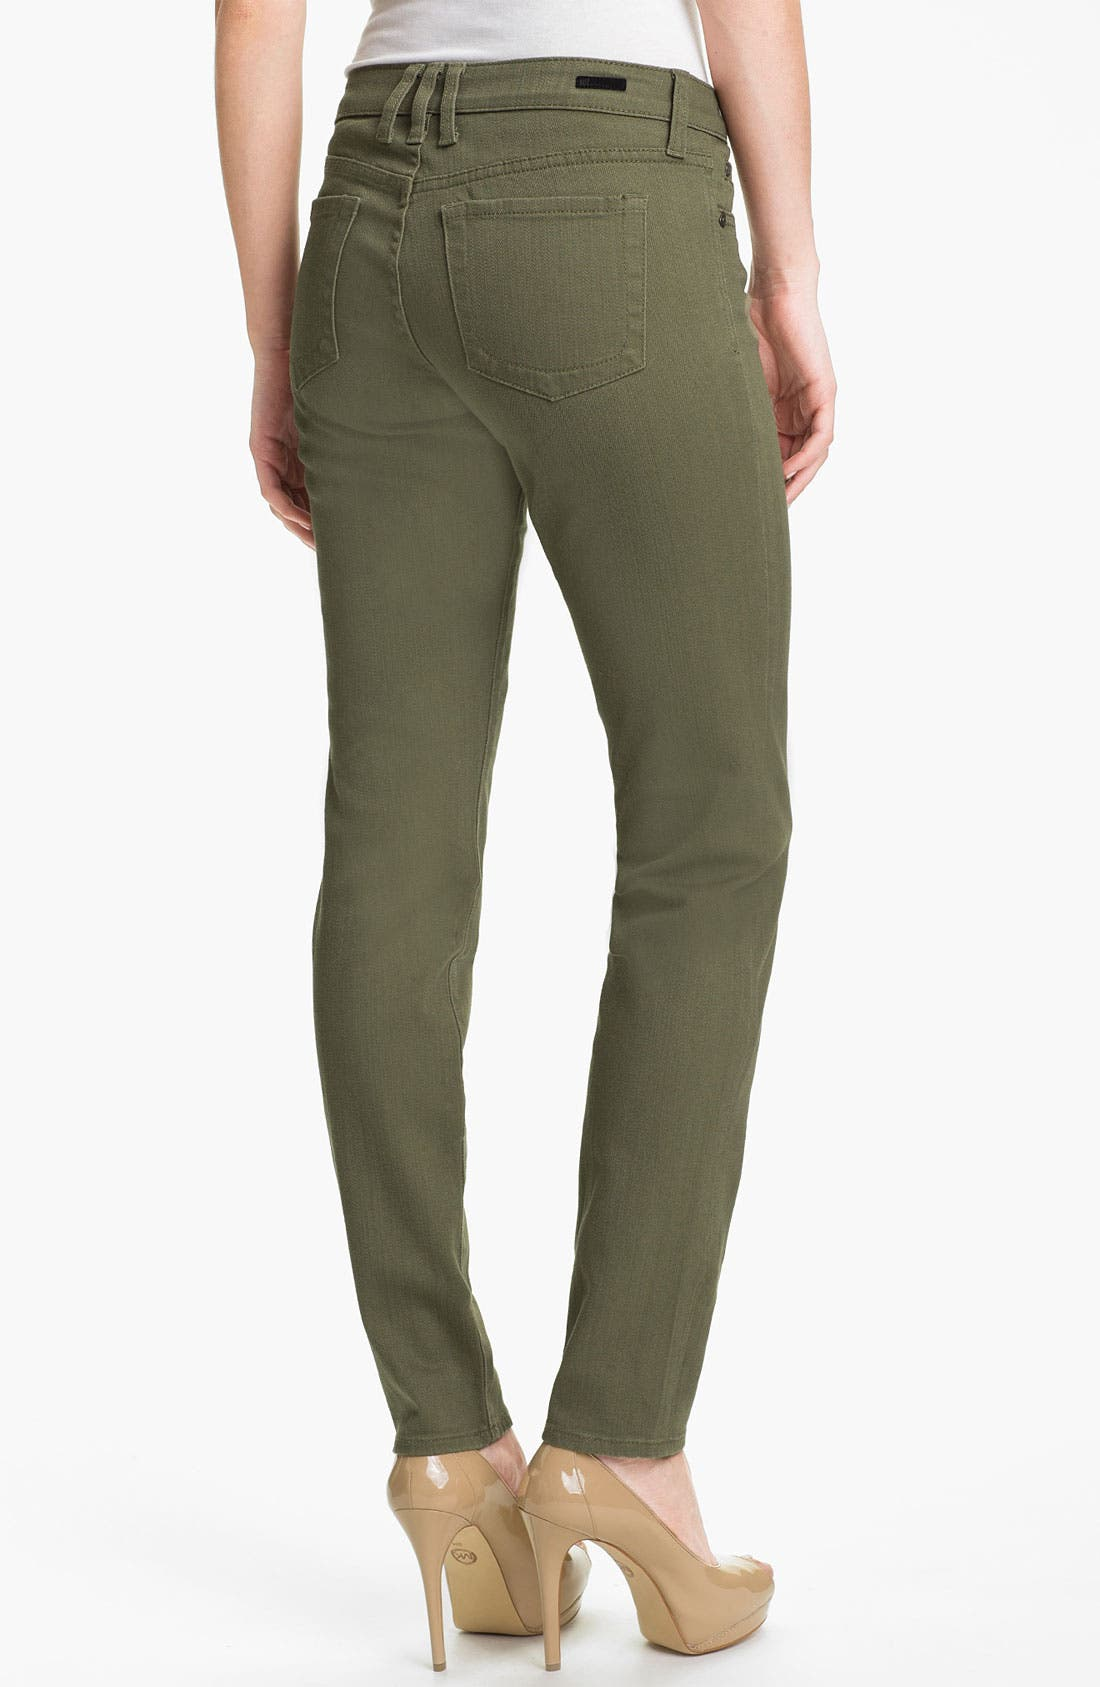 Alternate Image 2  - KUT from the Kloth 'Diana' Skinny Jeans (Pacific Olive)